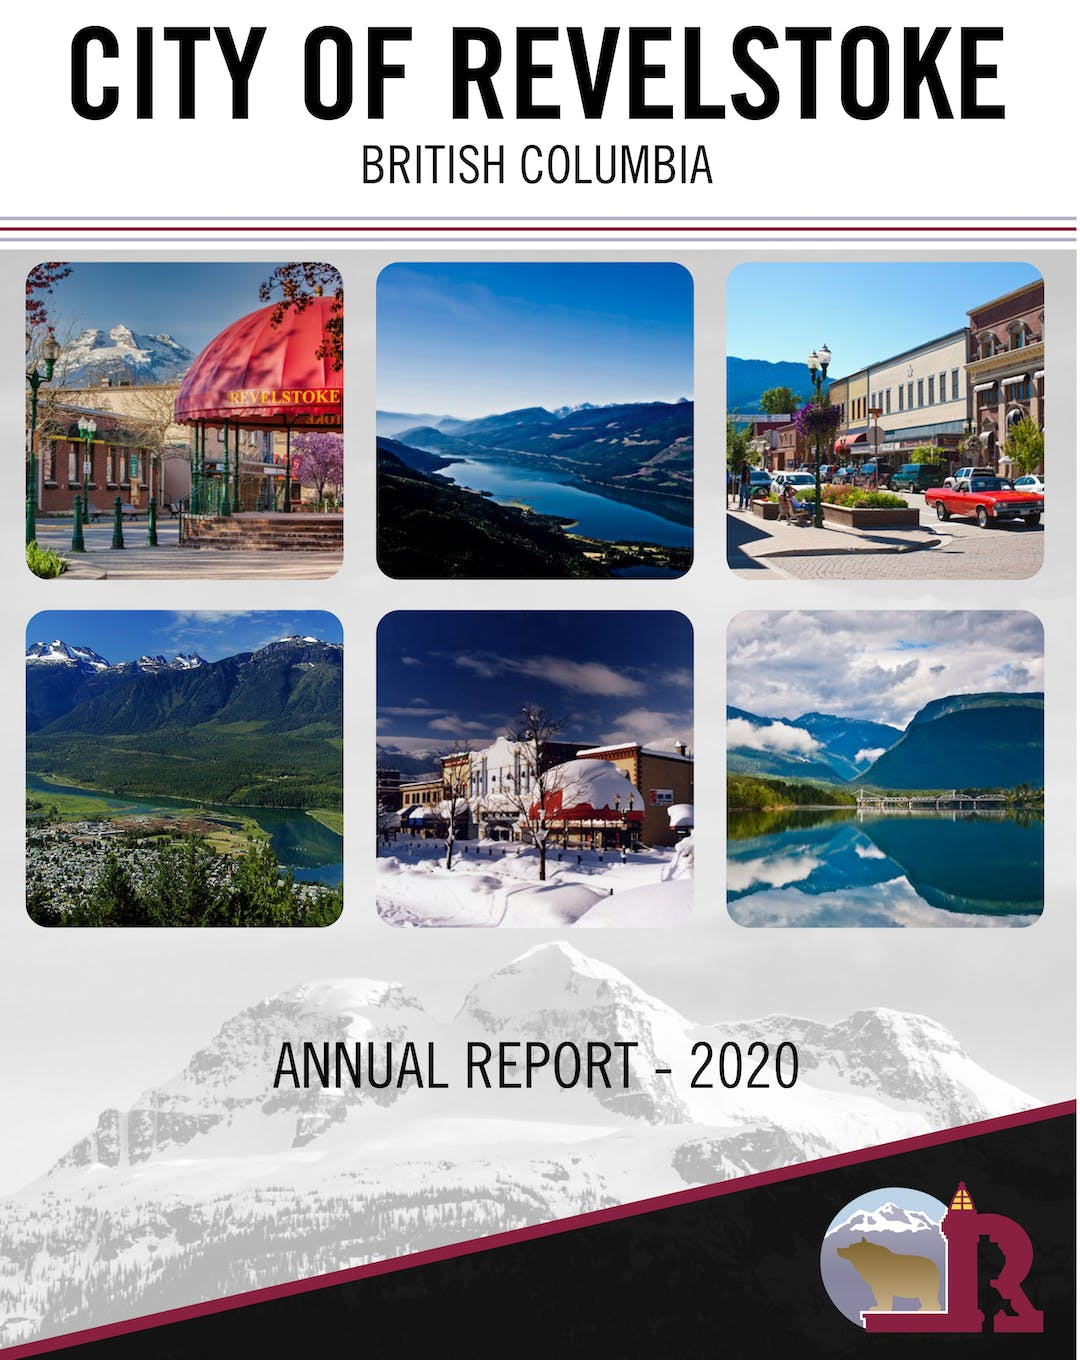 This is the Annual Report for the City of Revelstoke for the year 2020